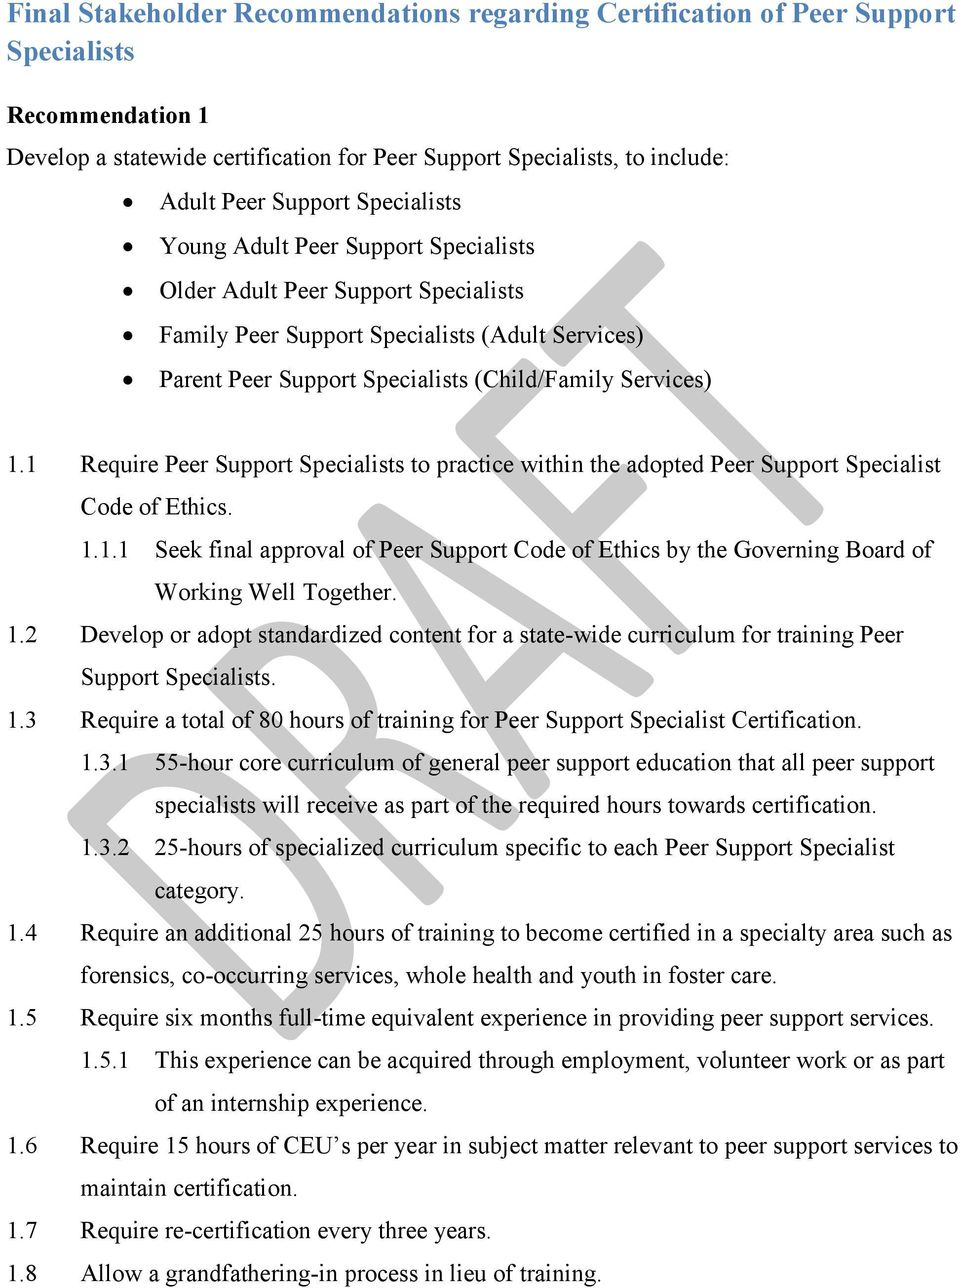 1 Require Peer Support Specialists to practice within the adopted Peer Support Specialist Code of Ethics. 1.1.1 Seek final approval of Peer Support Code of Ethics by the Governing Board of Working Well Together.